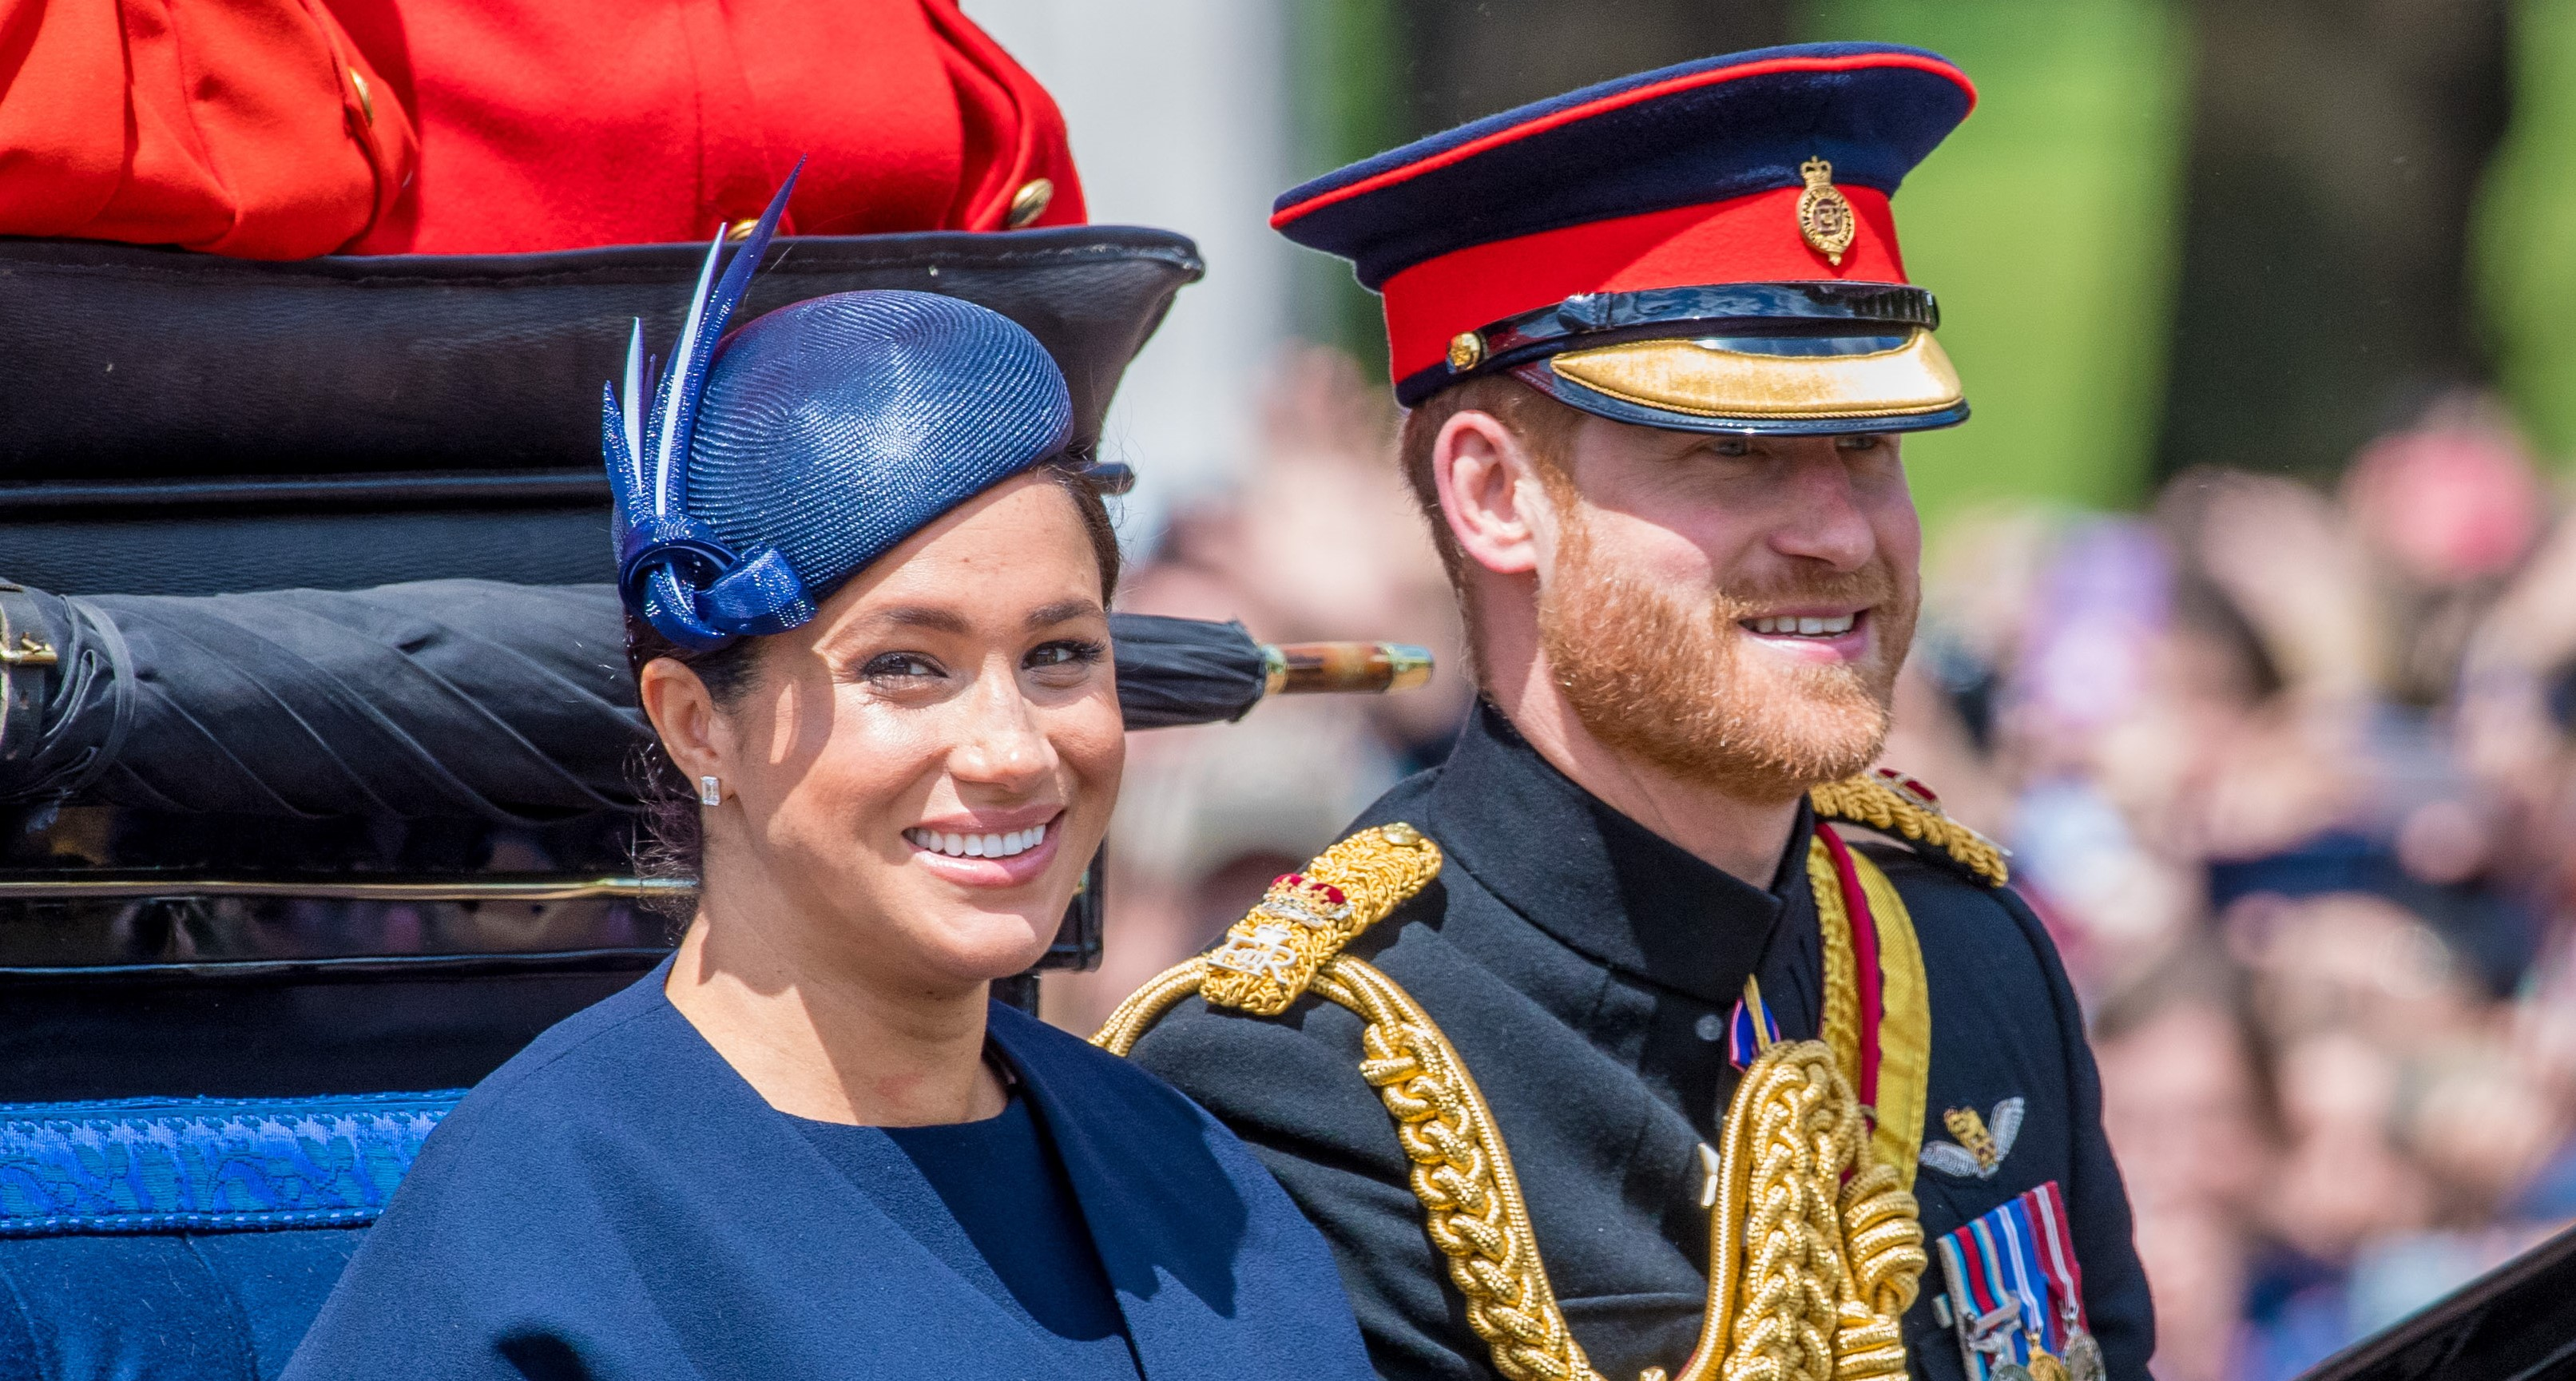 Meghan and Harry under fire for spending £2.4 million on new home renovations